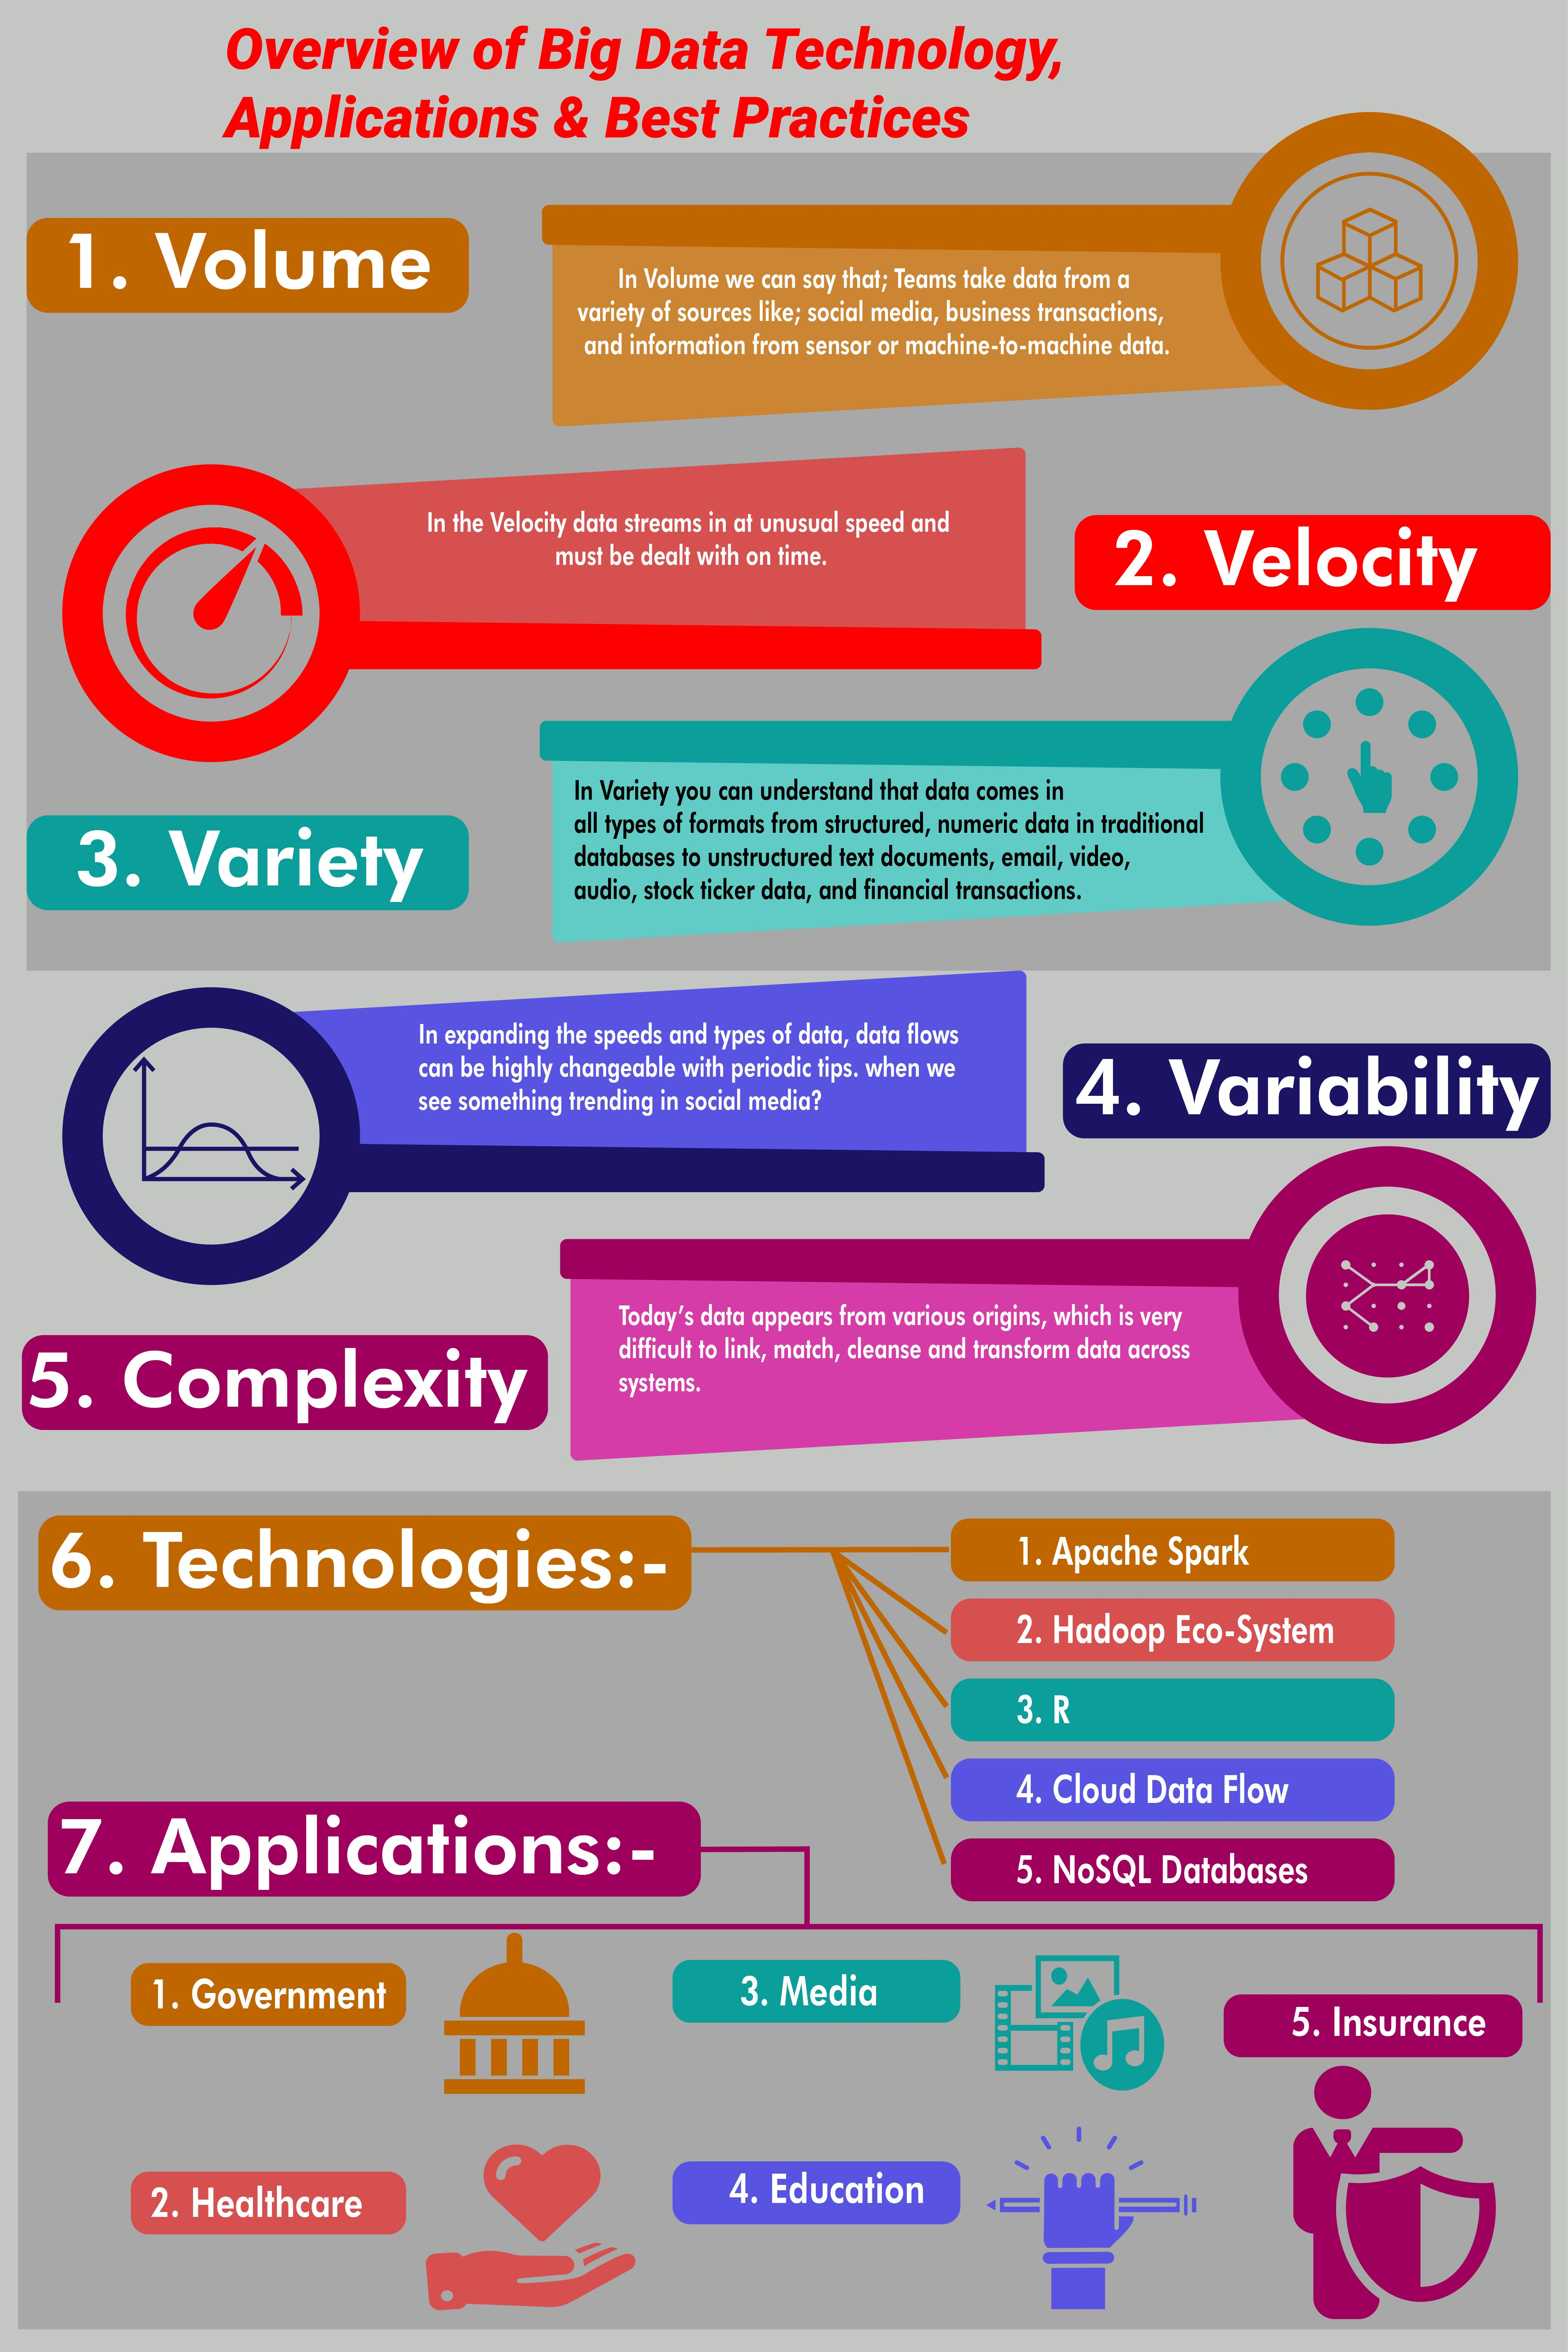 Overview Of Big Data Technology Applications Best Practices Big Data Technologies Big Data Infographic Big Data Applications